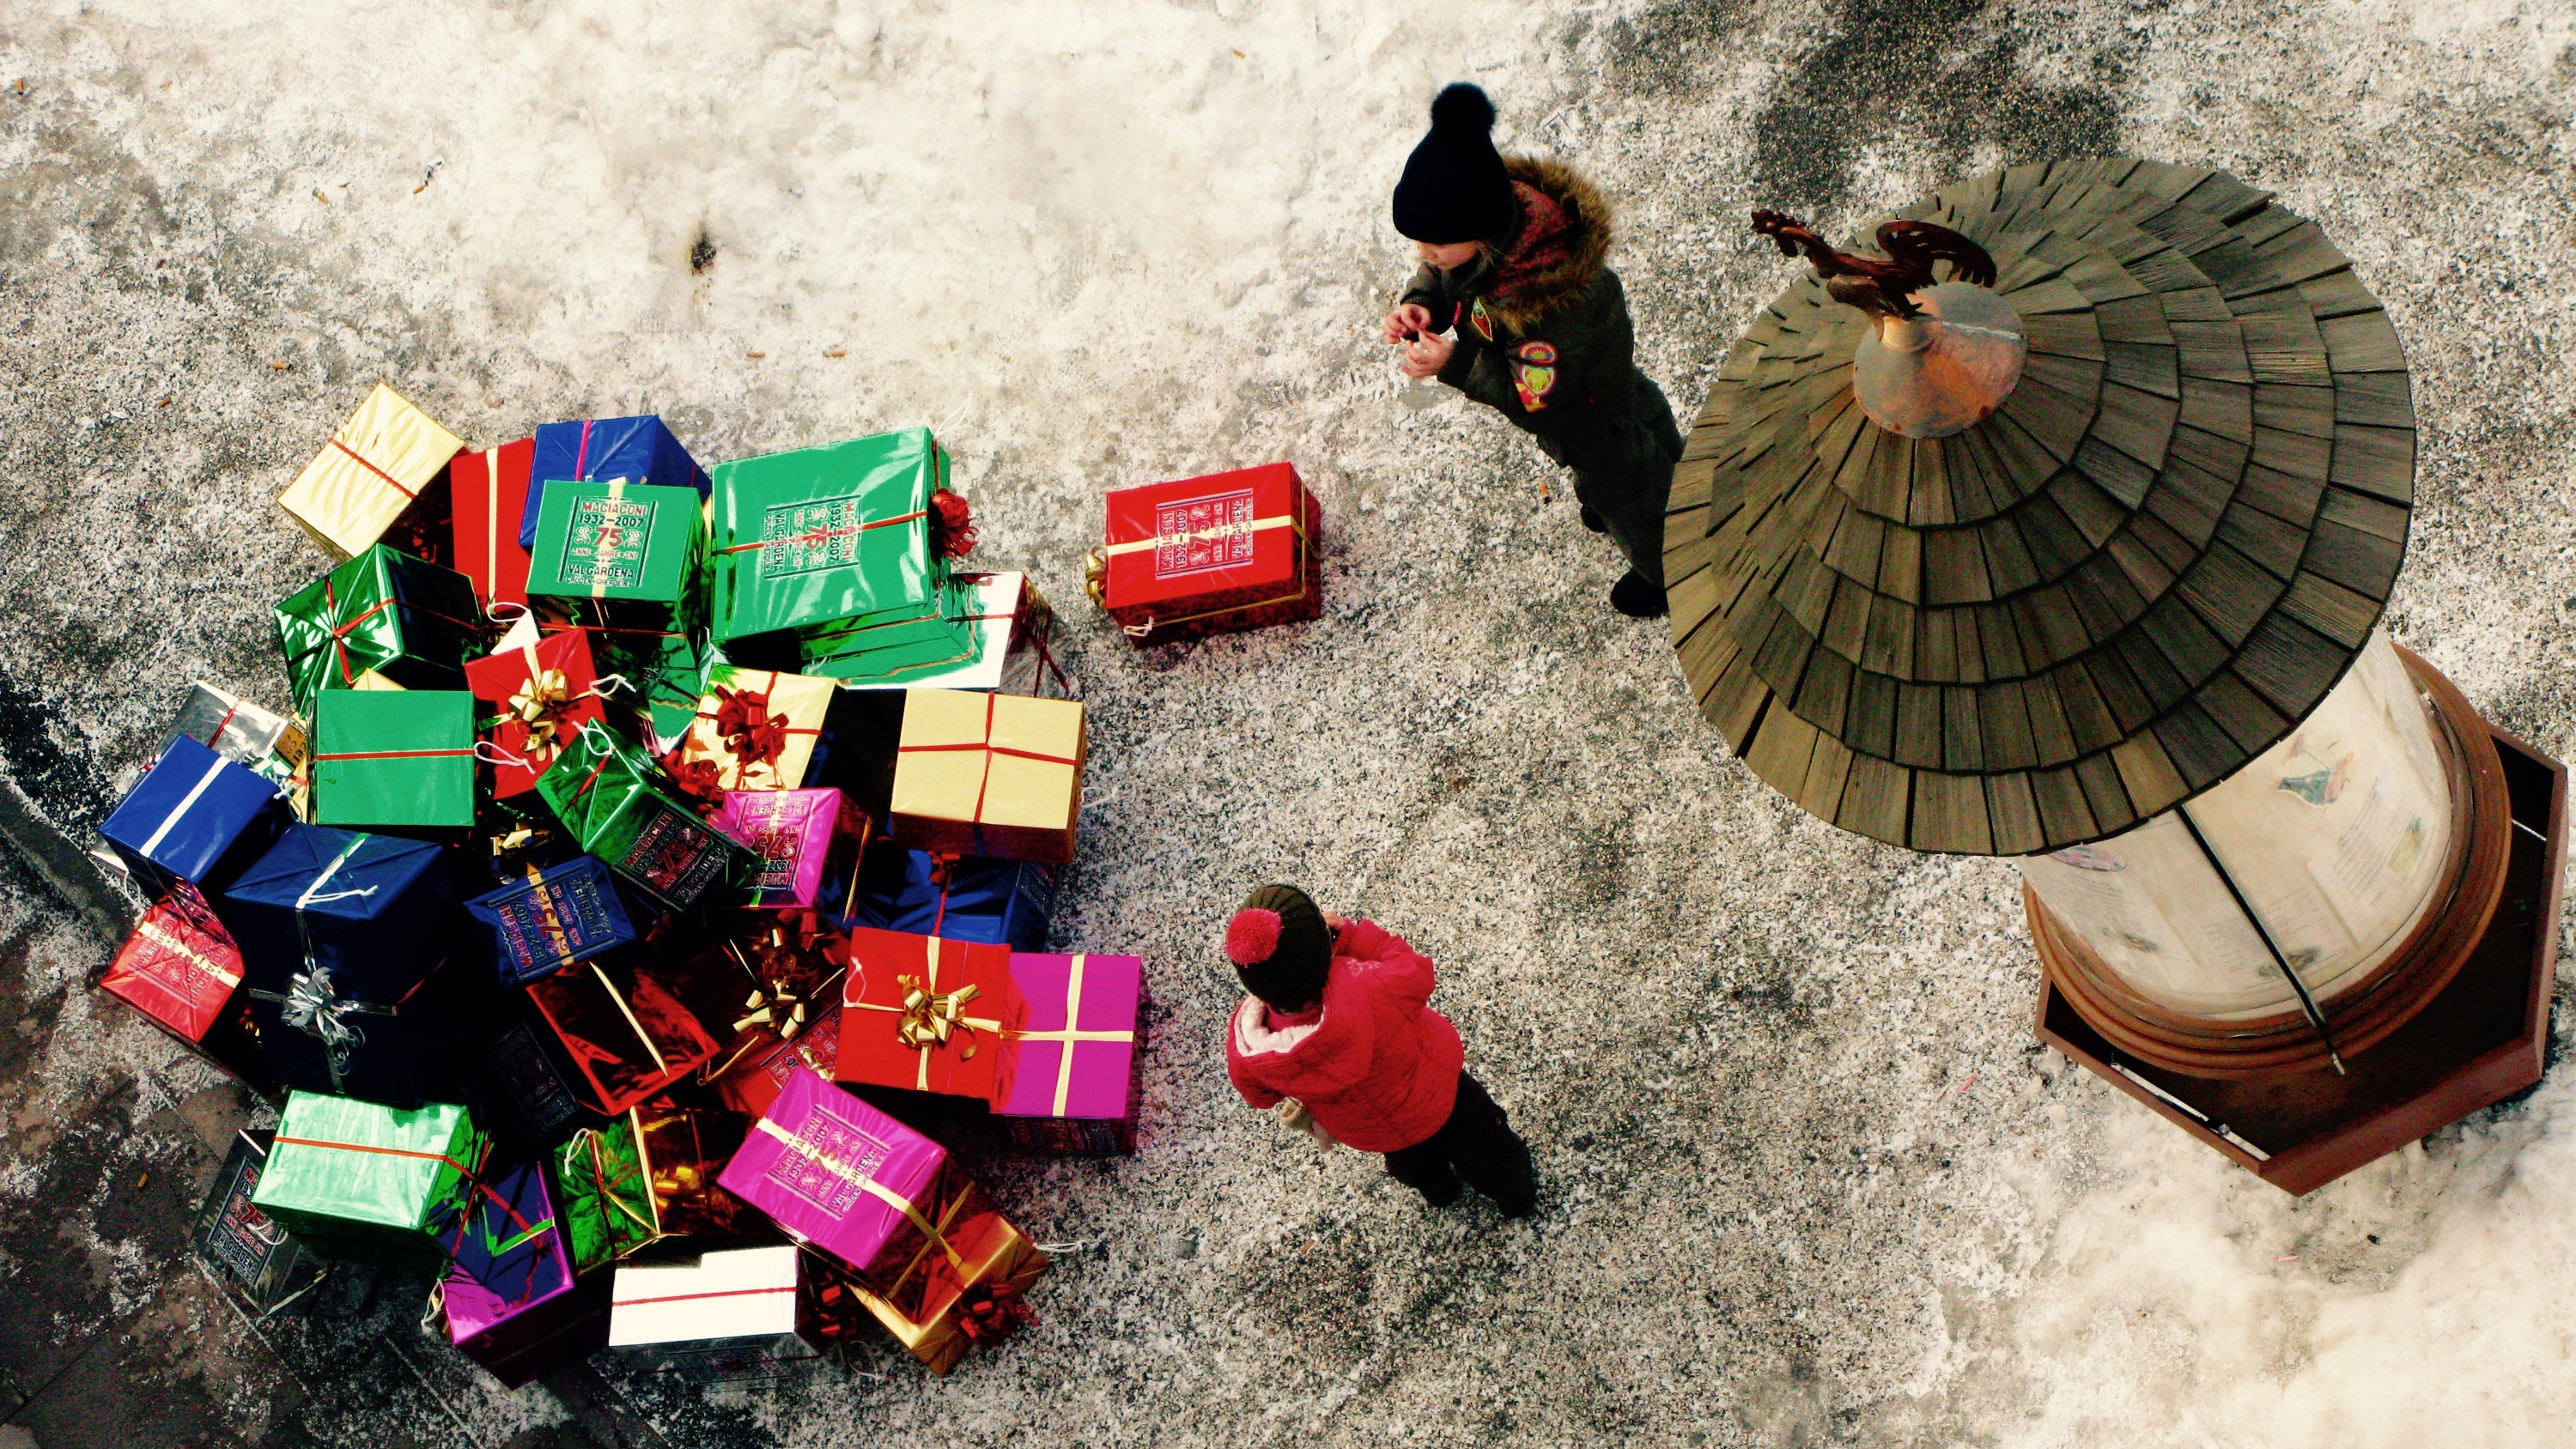 Presents piled on the ground with onlooking children.